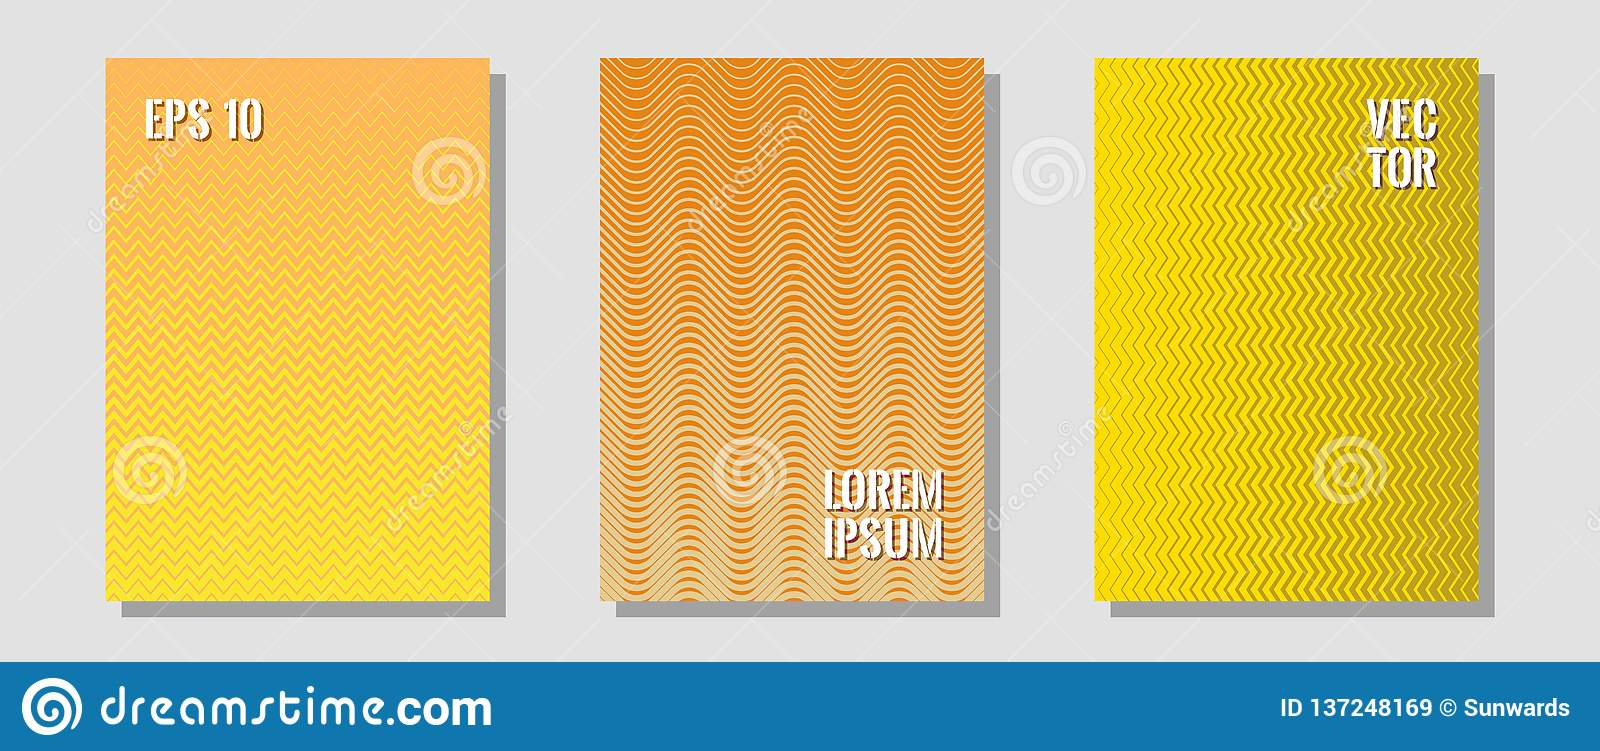 Banner graphics cool vector templates set.